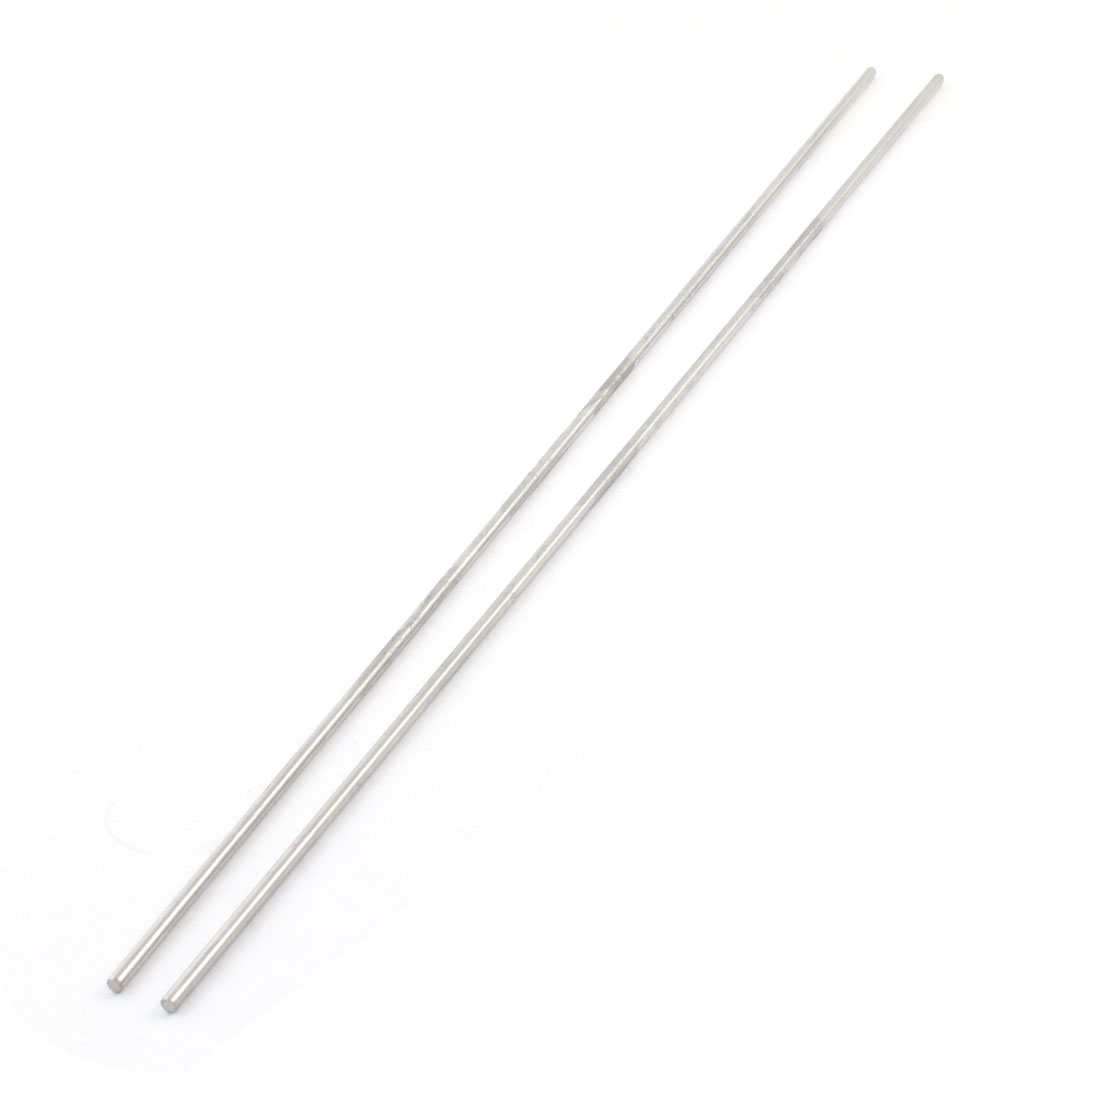 Replacement RC Car Part Stainless Steel Axle Rod Bar Stick 350mm x 3mm 2Pcs